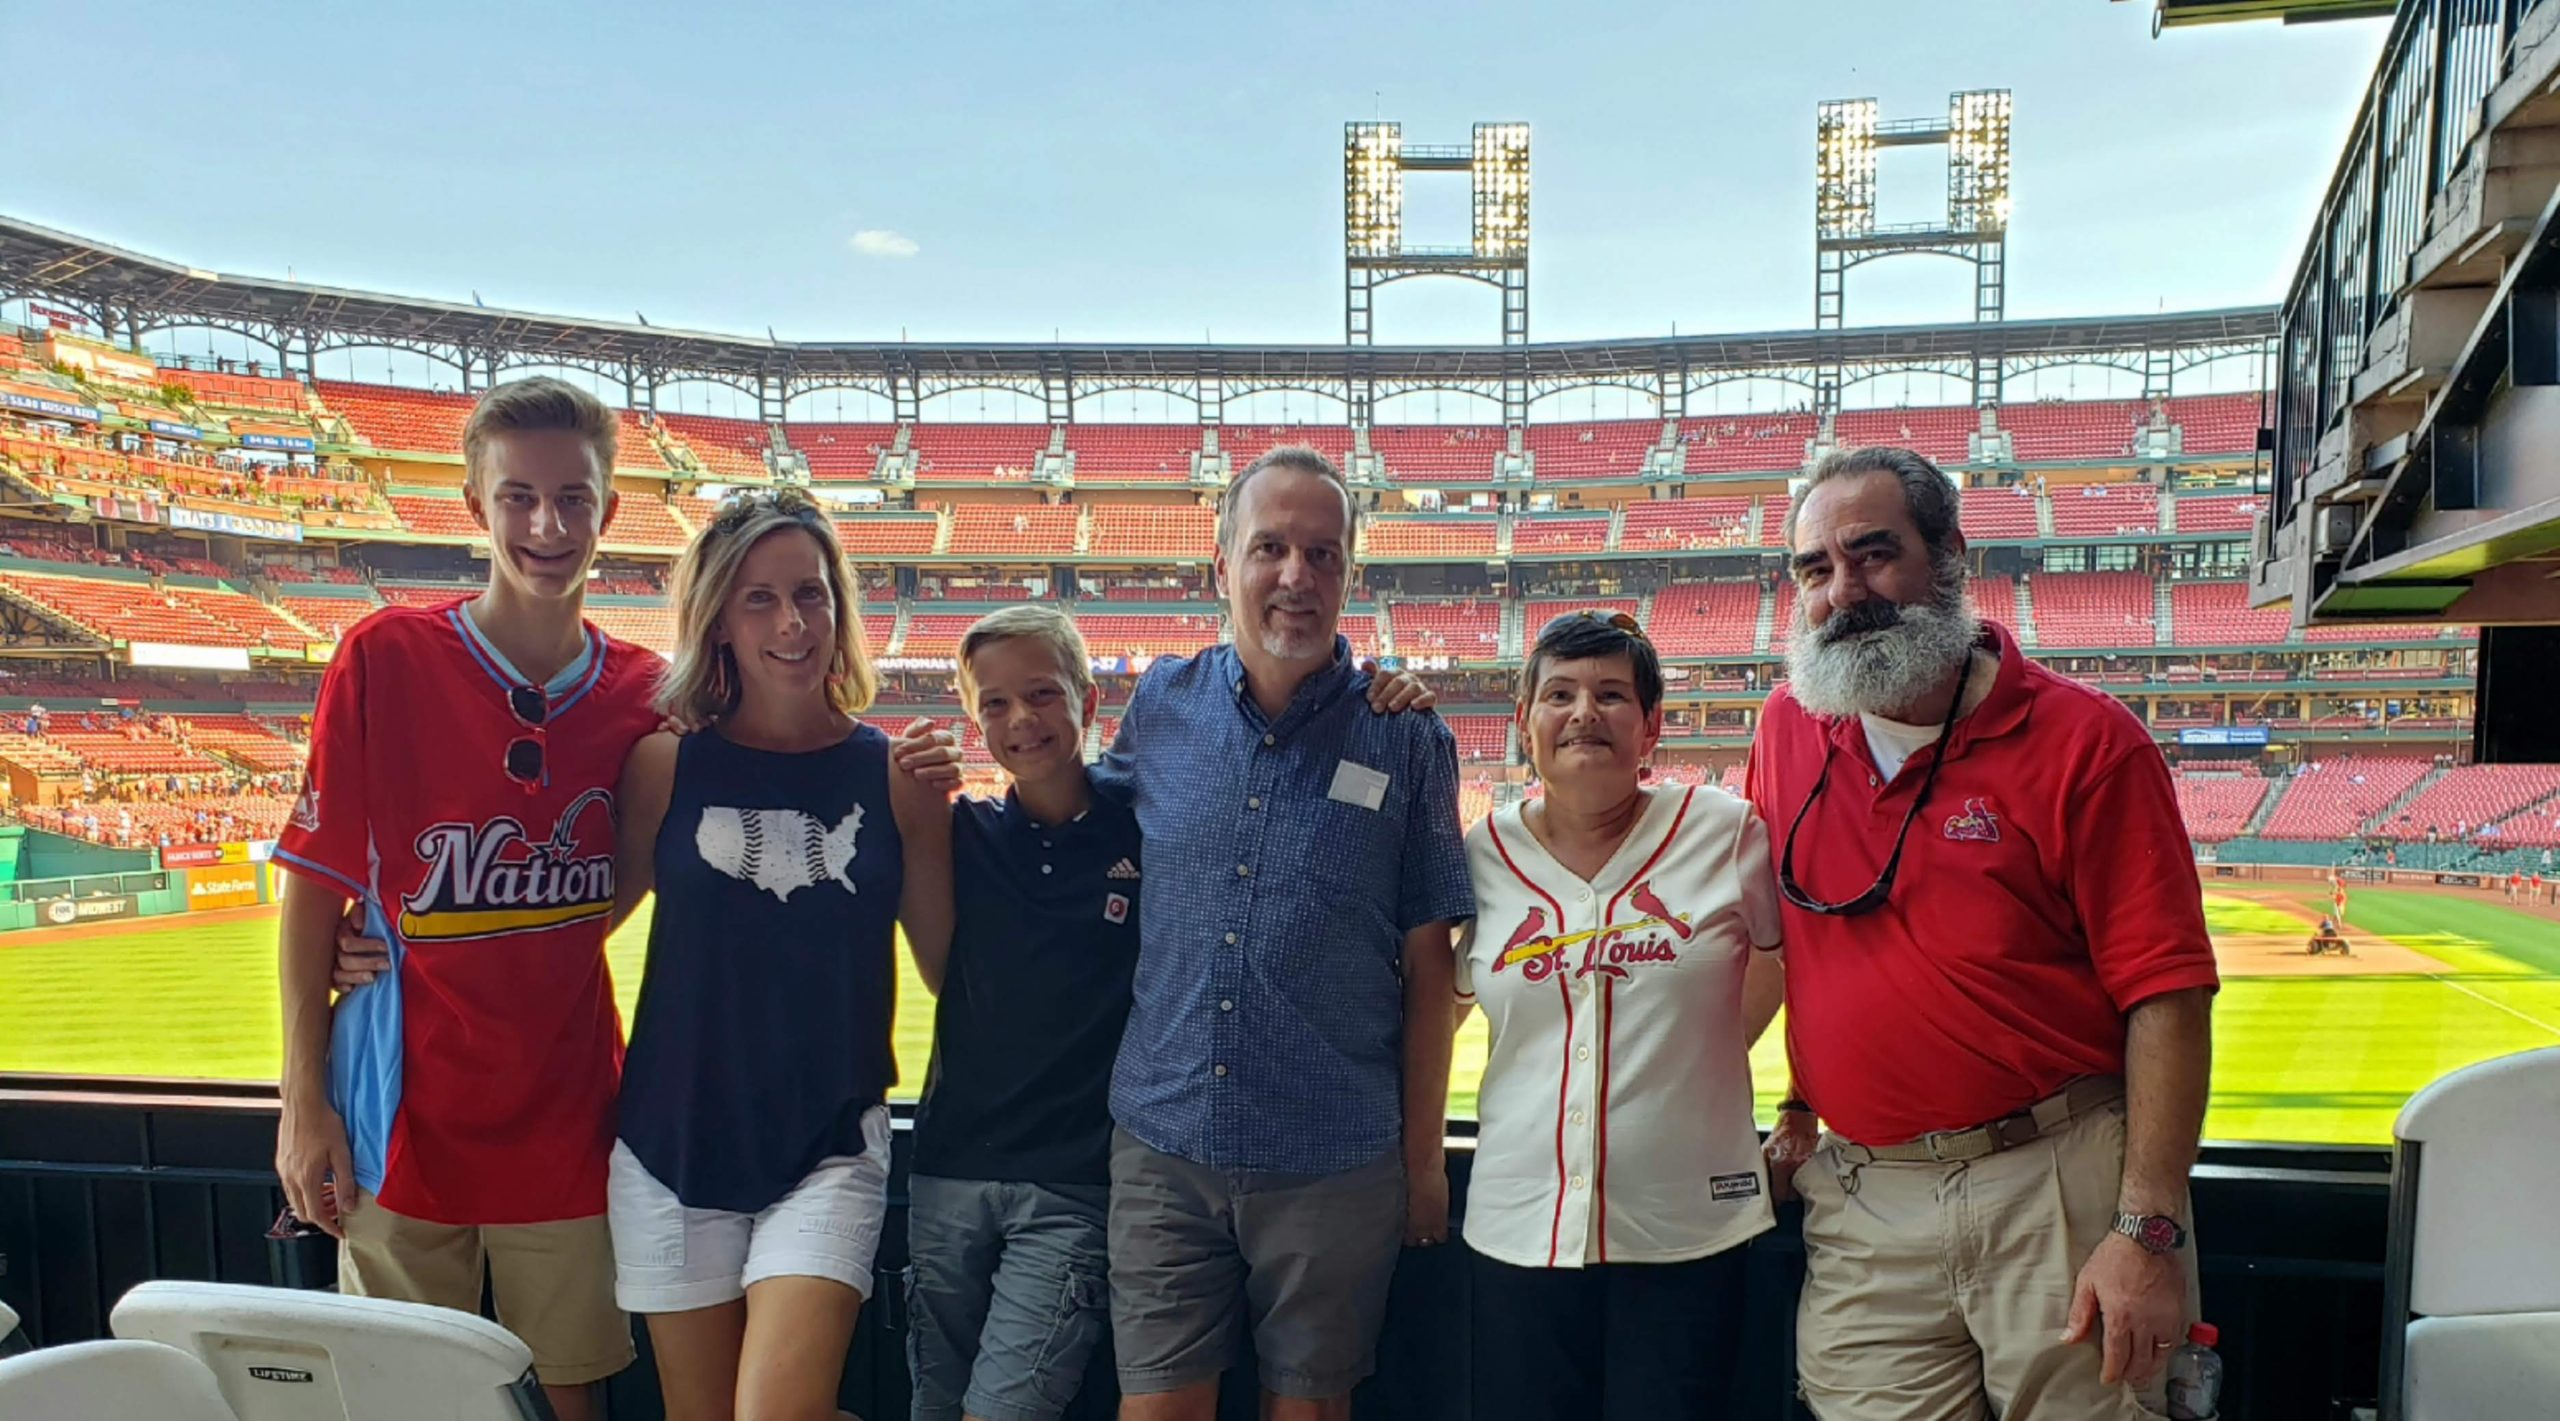 Larry and his family raising awareness of ALS in a tour of ballparks around the U.S.